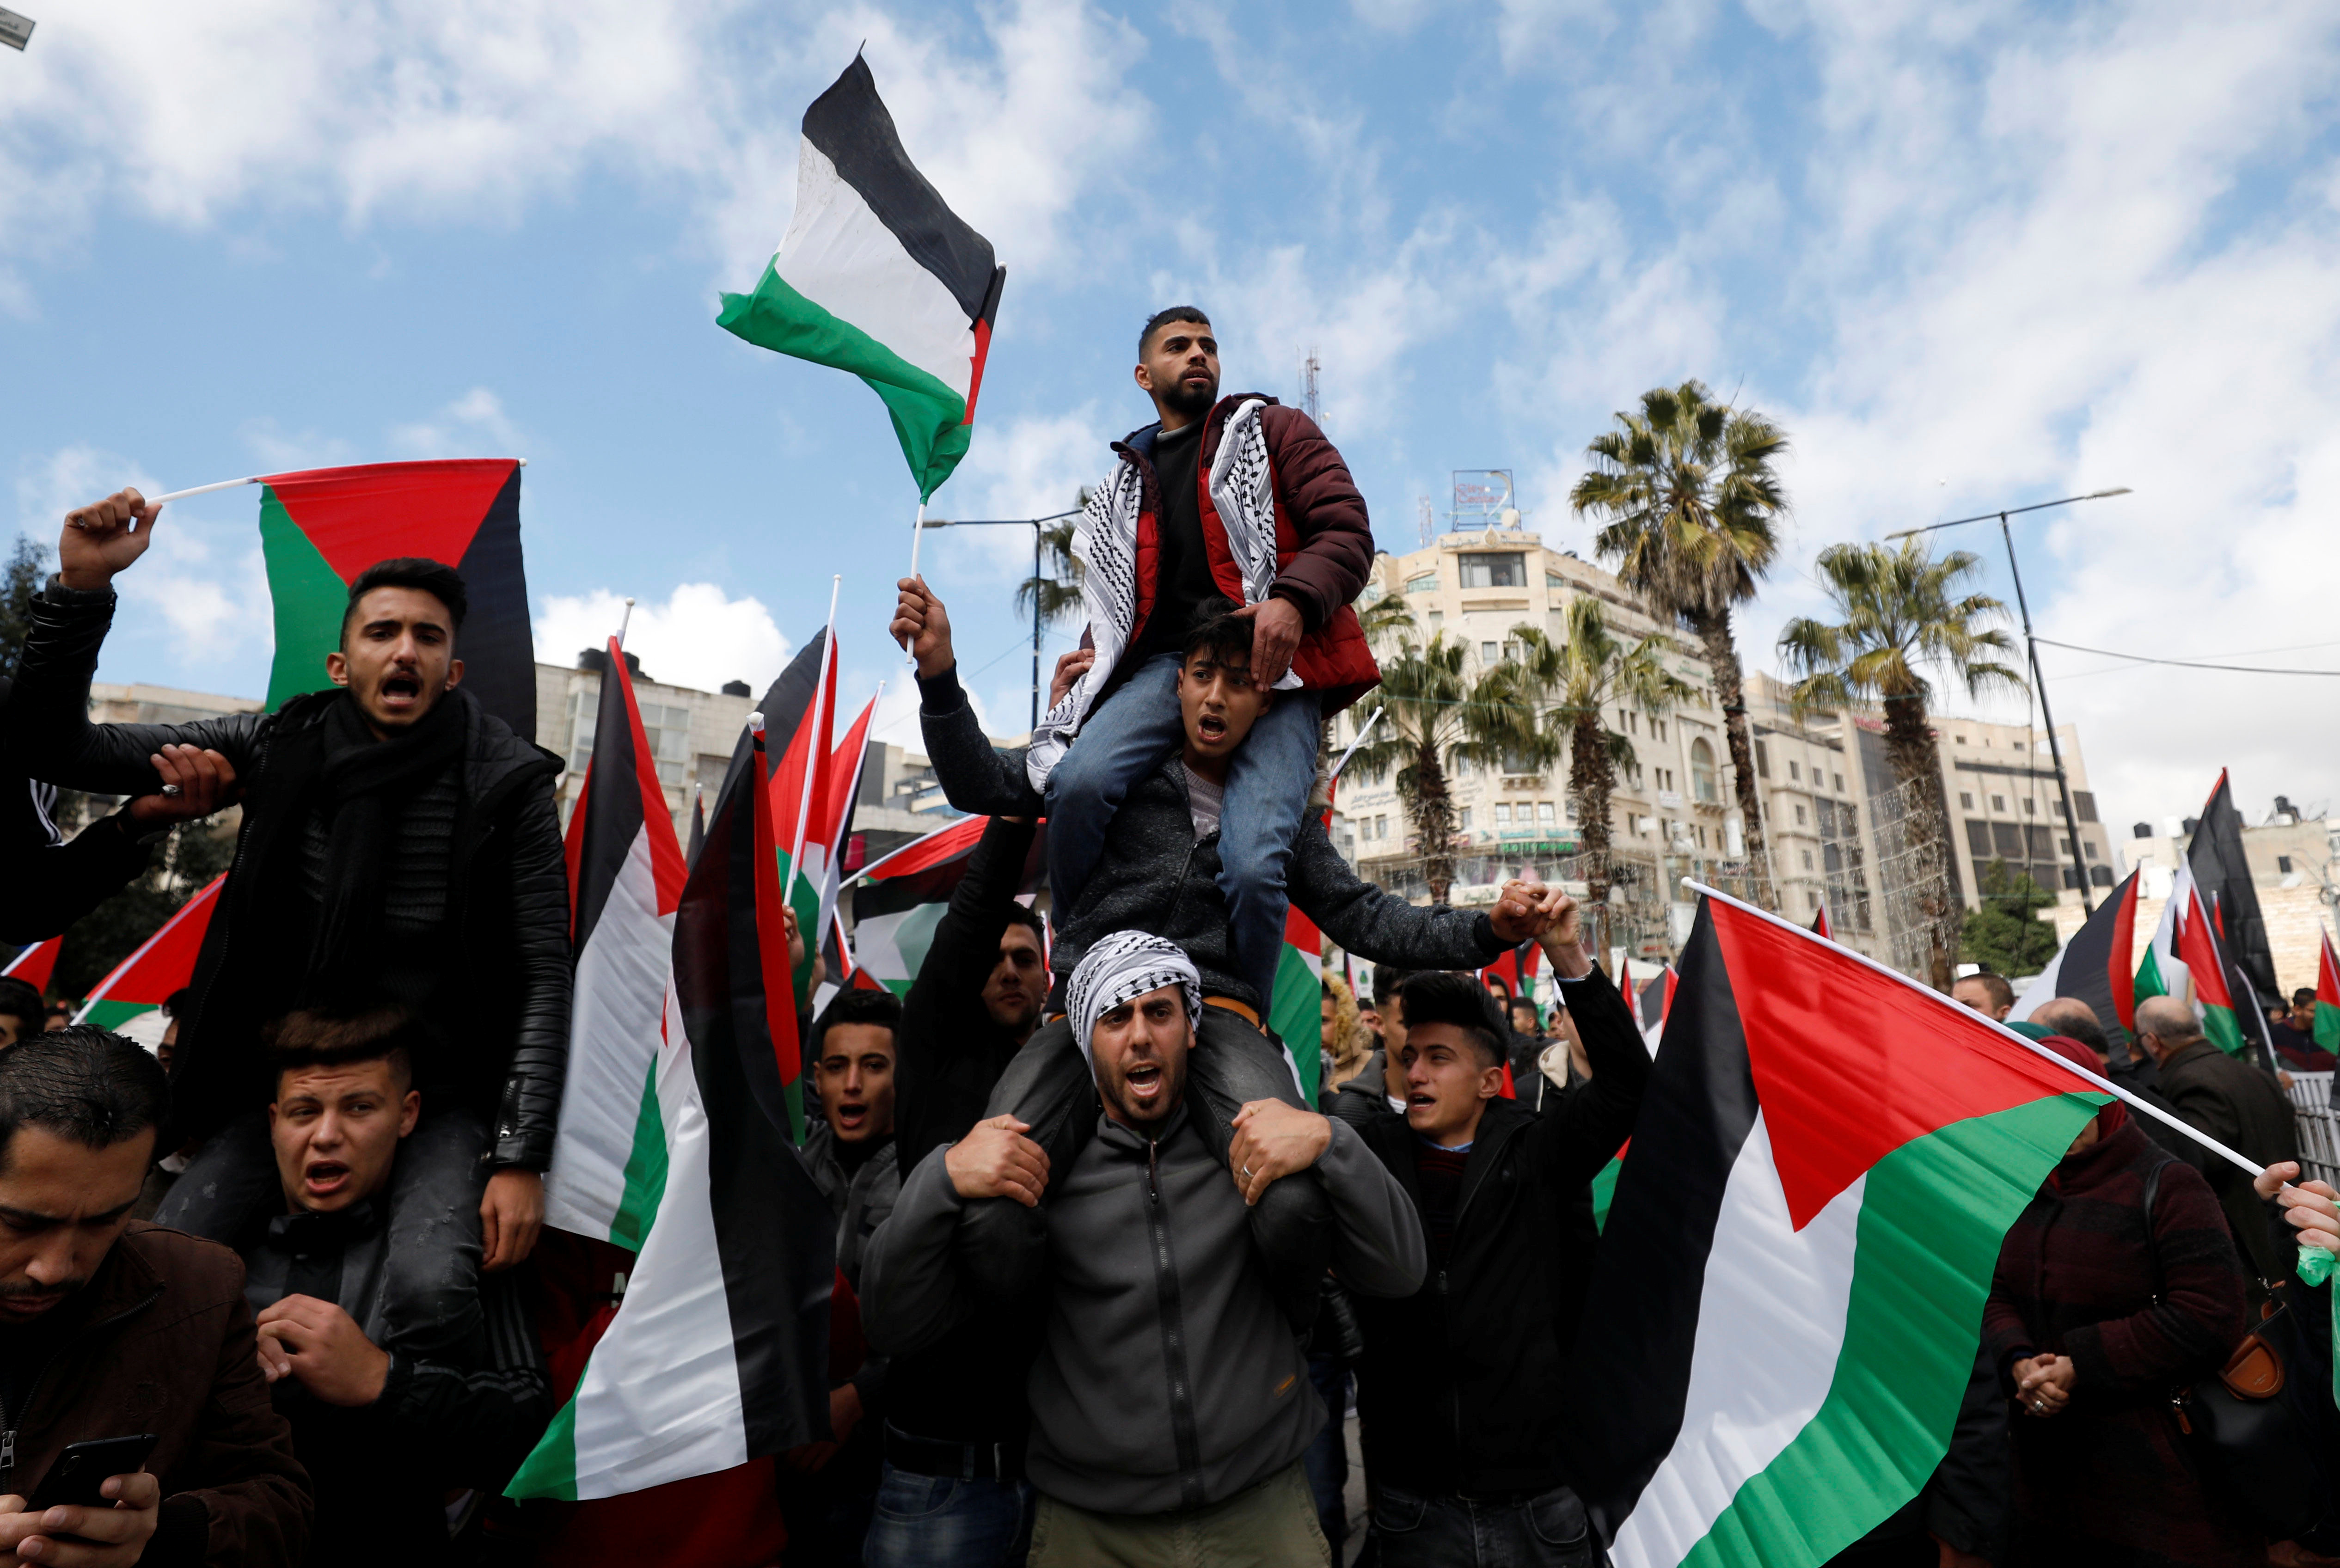 Palestinian demonstrators take part in a rally in support of President Mahmoud Abbas and against the U.S. President Donald Trump's Middle East peace plan, in Ramallah in the Israeli-occupied West Bank February 11, 2020. REUTERS/Mohamad Torokman